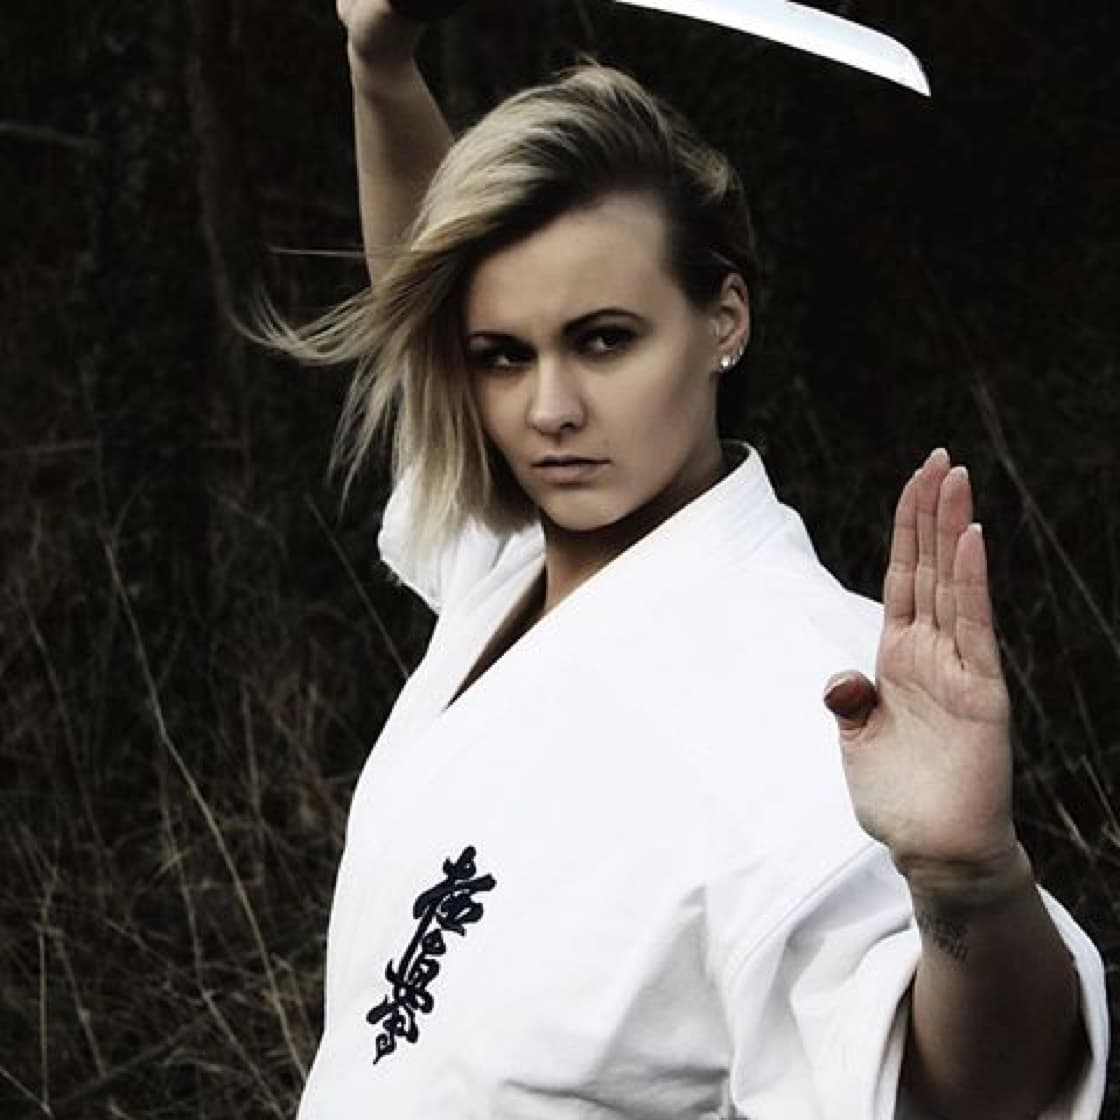 Karate with Sword